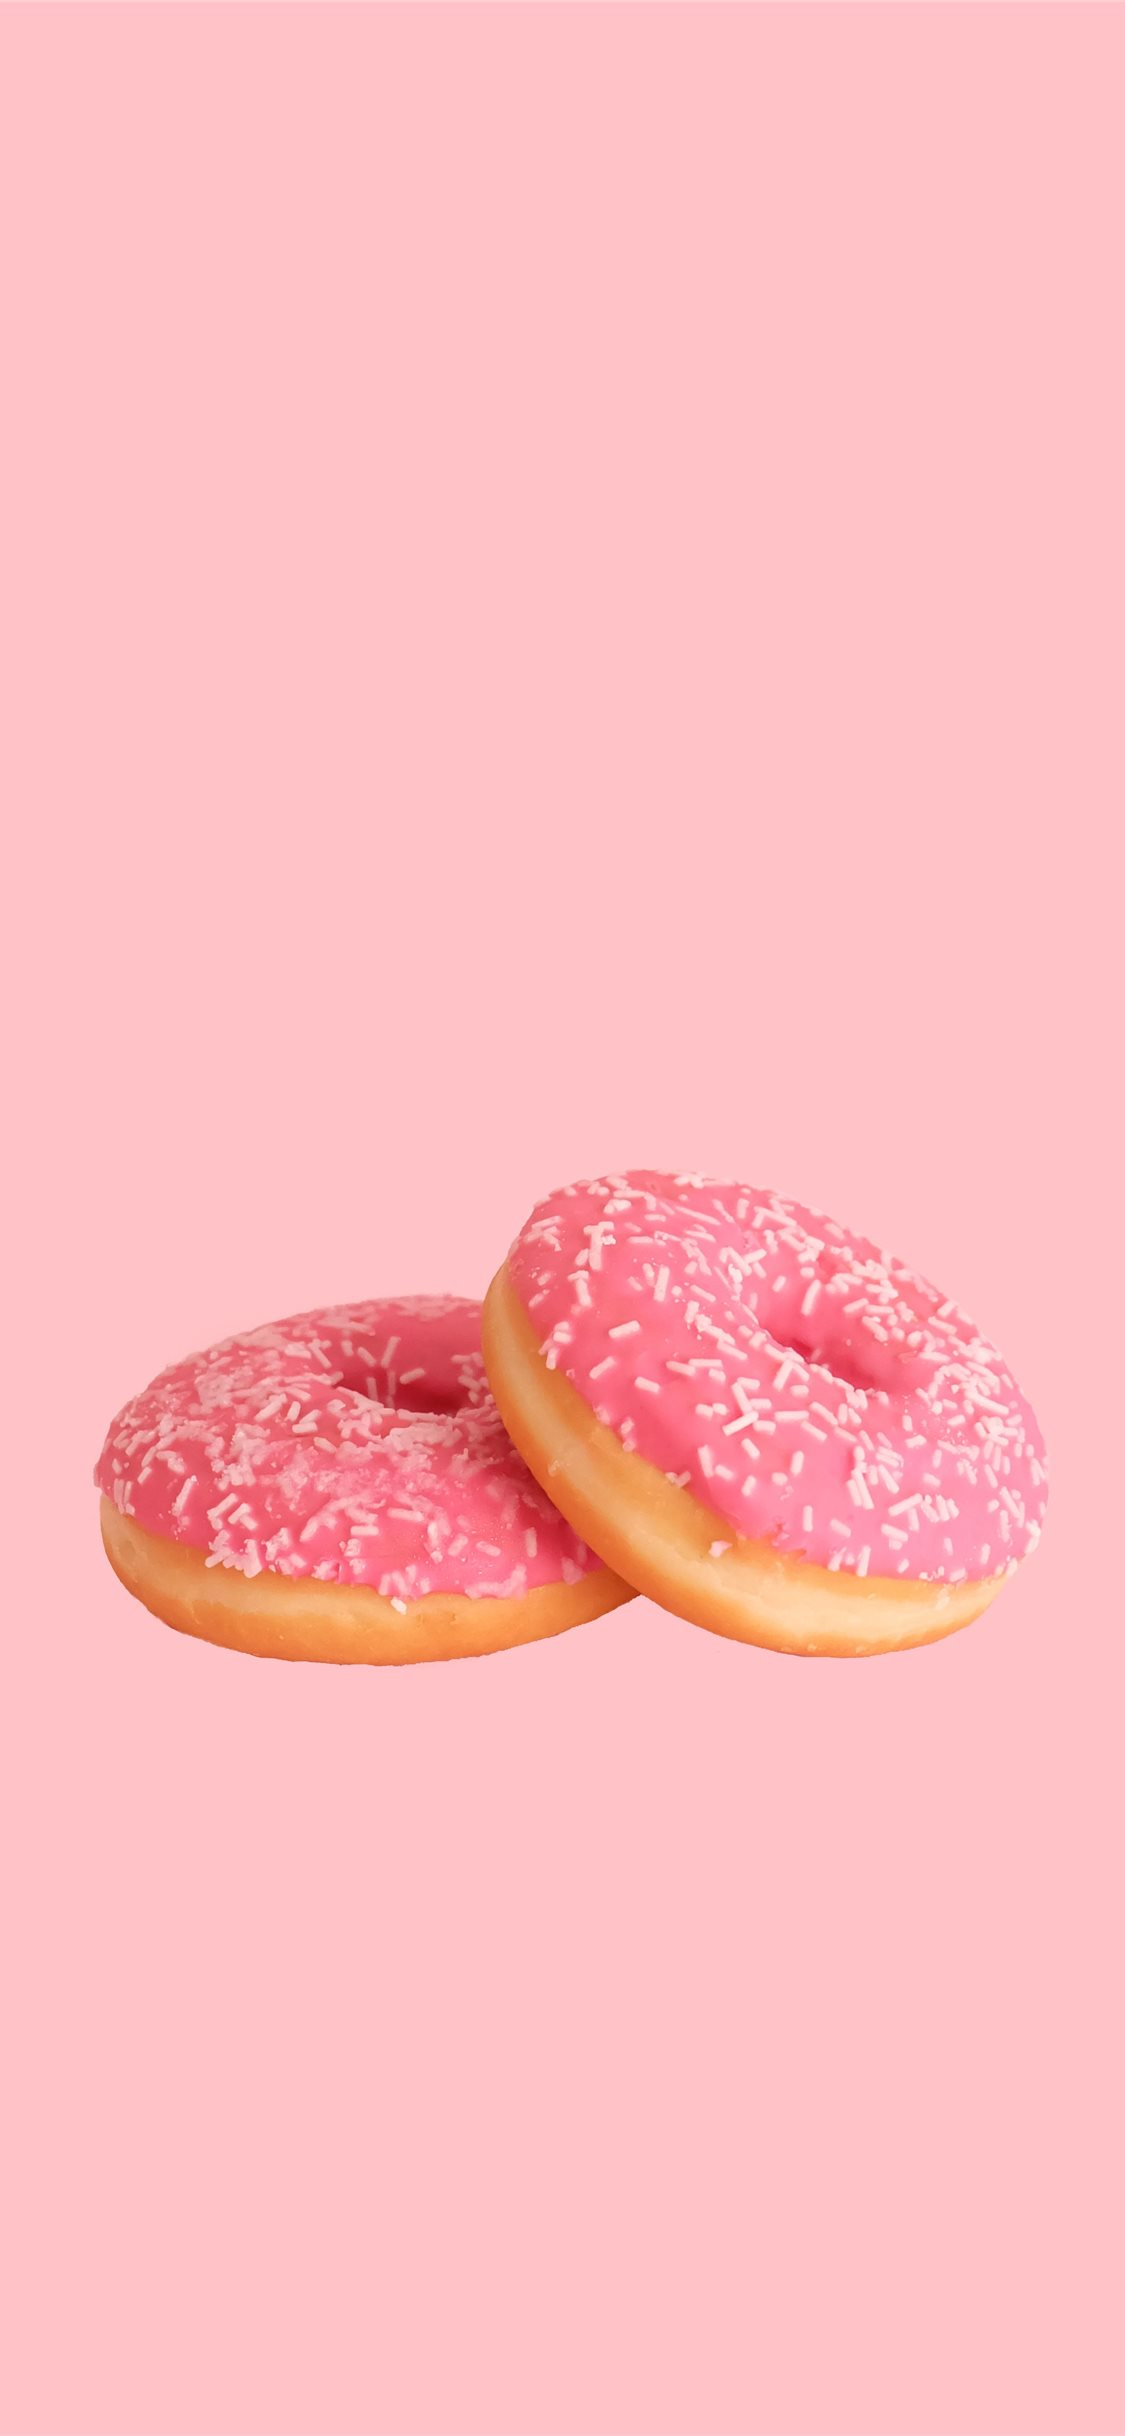 Donut Iphone X Wallpapers Free Download